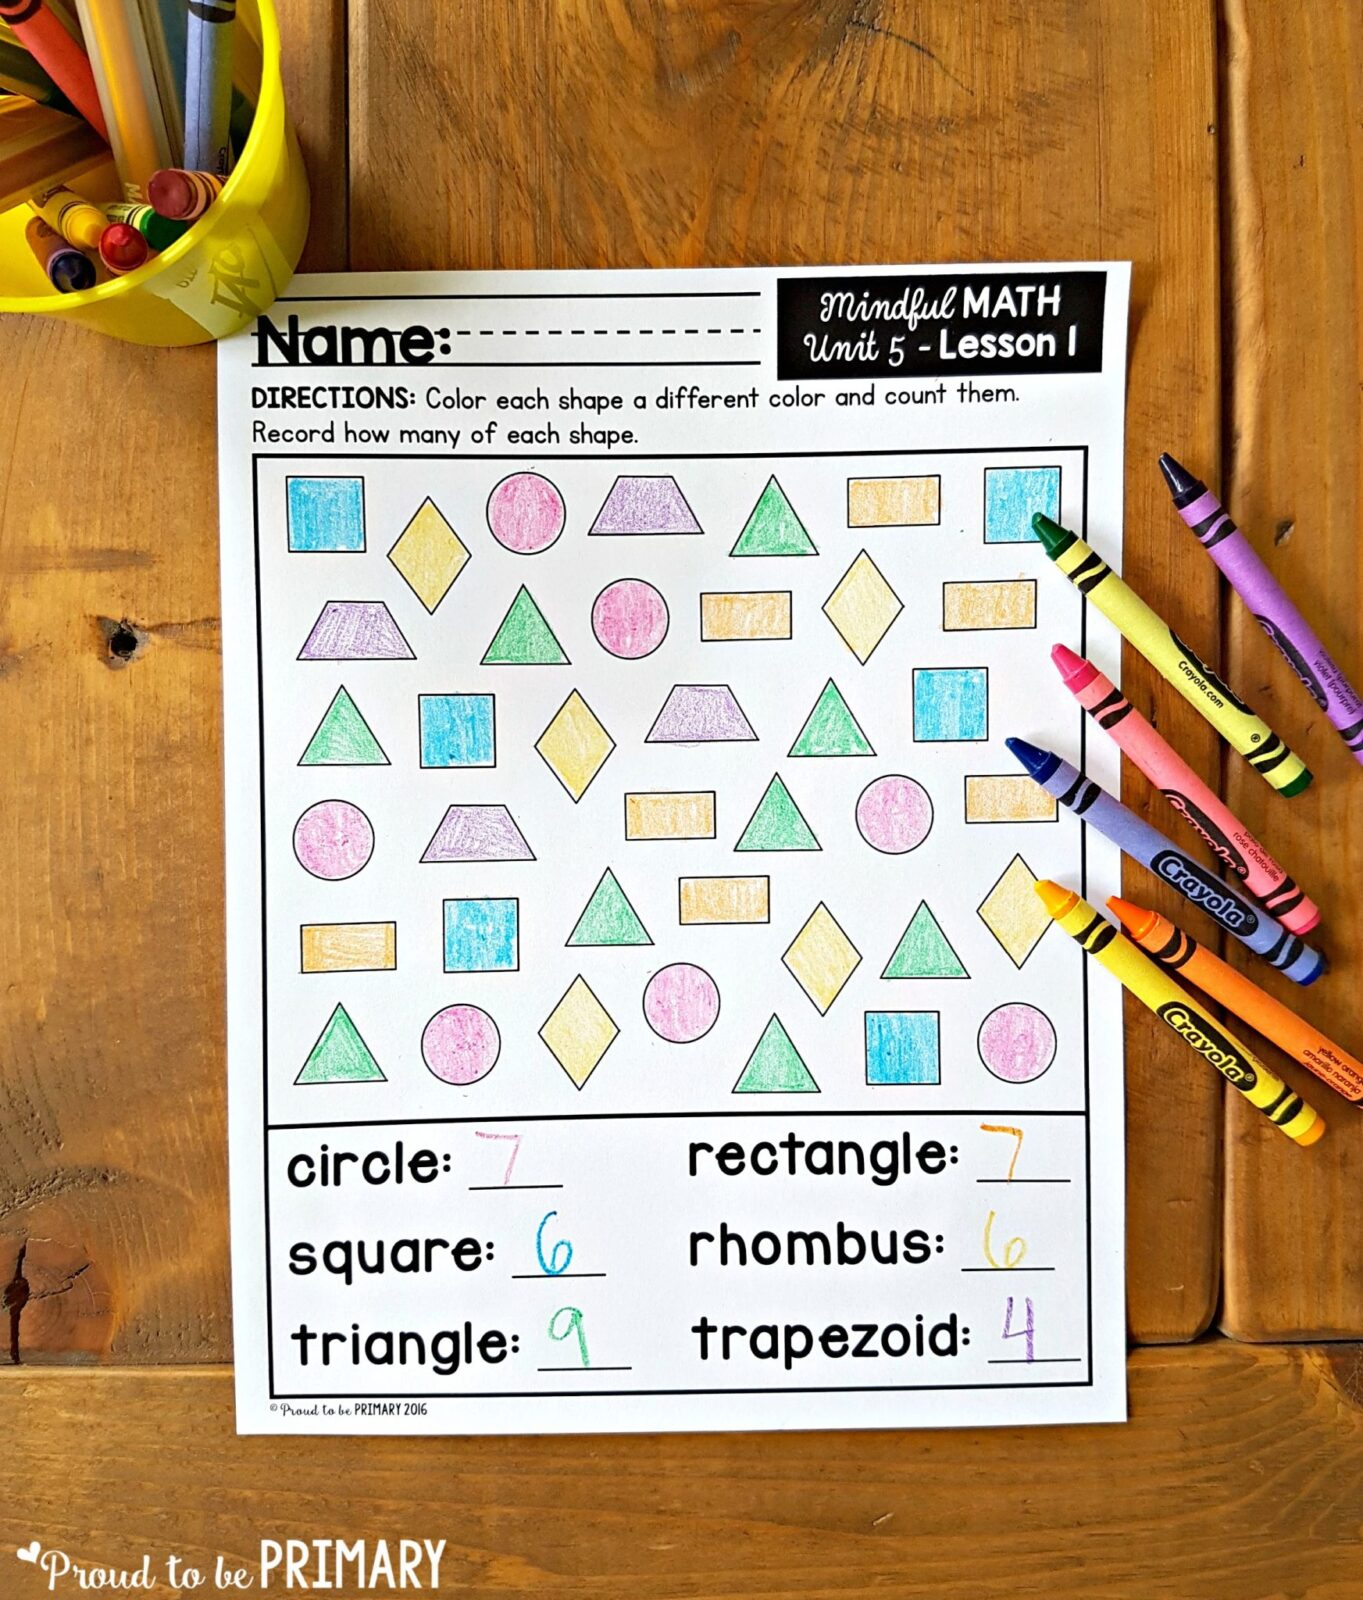 Practice Forming Shapes Using Different Tools, Such As Doadot Markers Or  Stickers Example